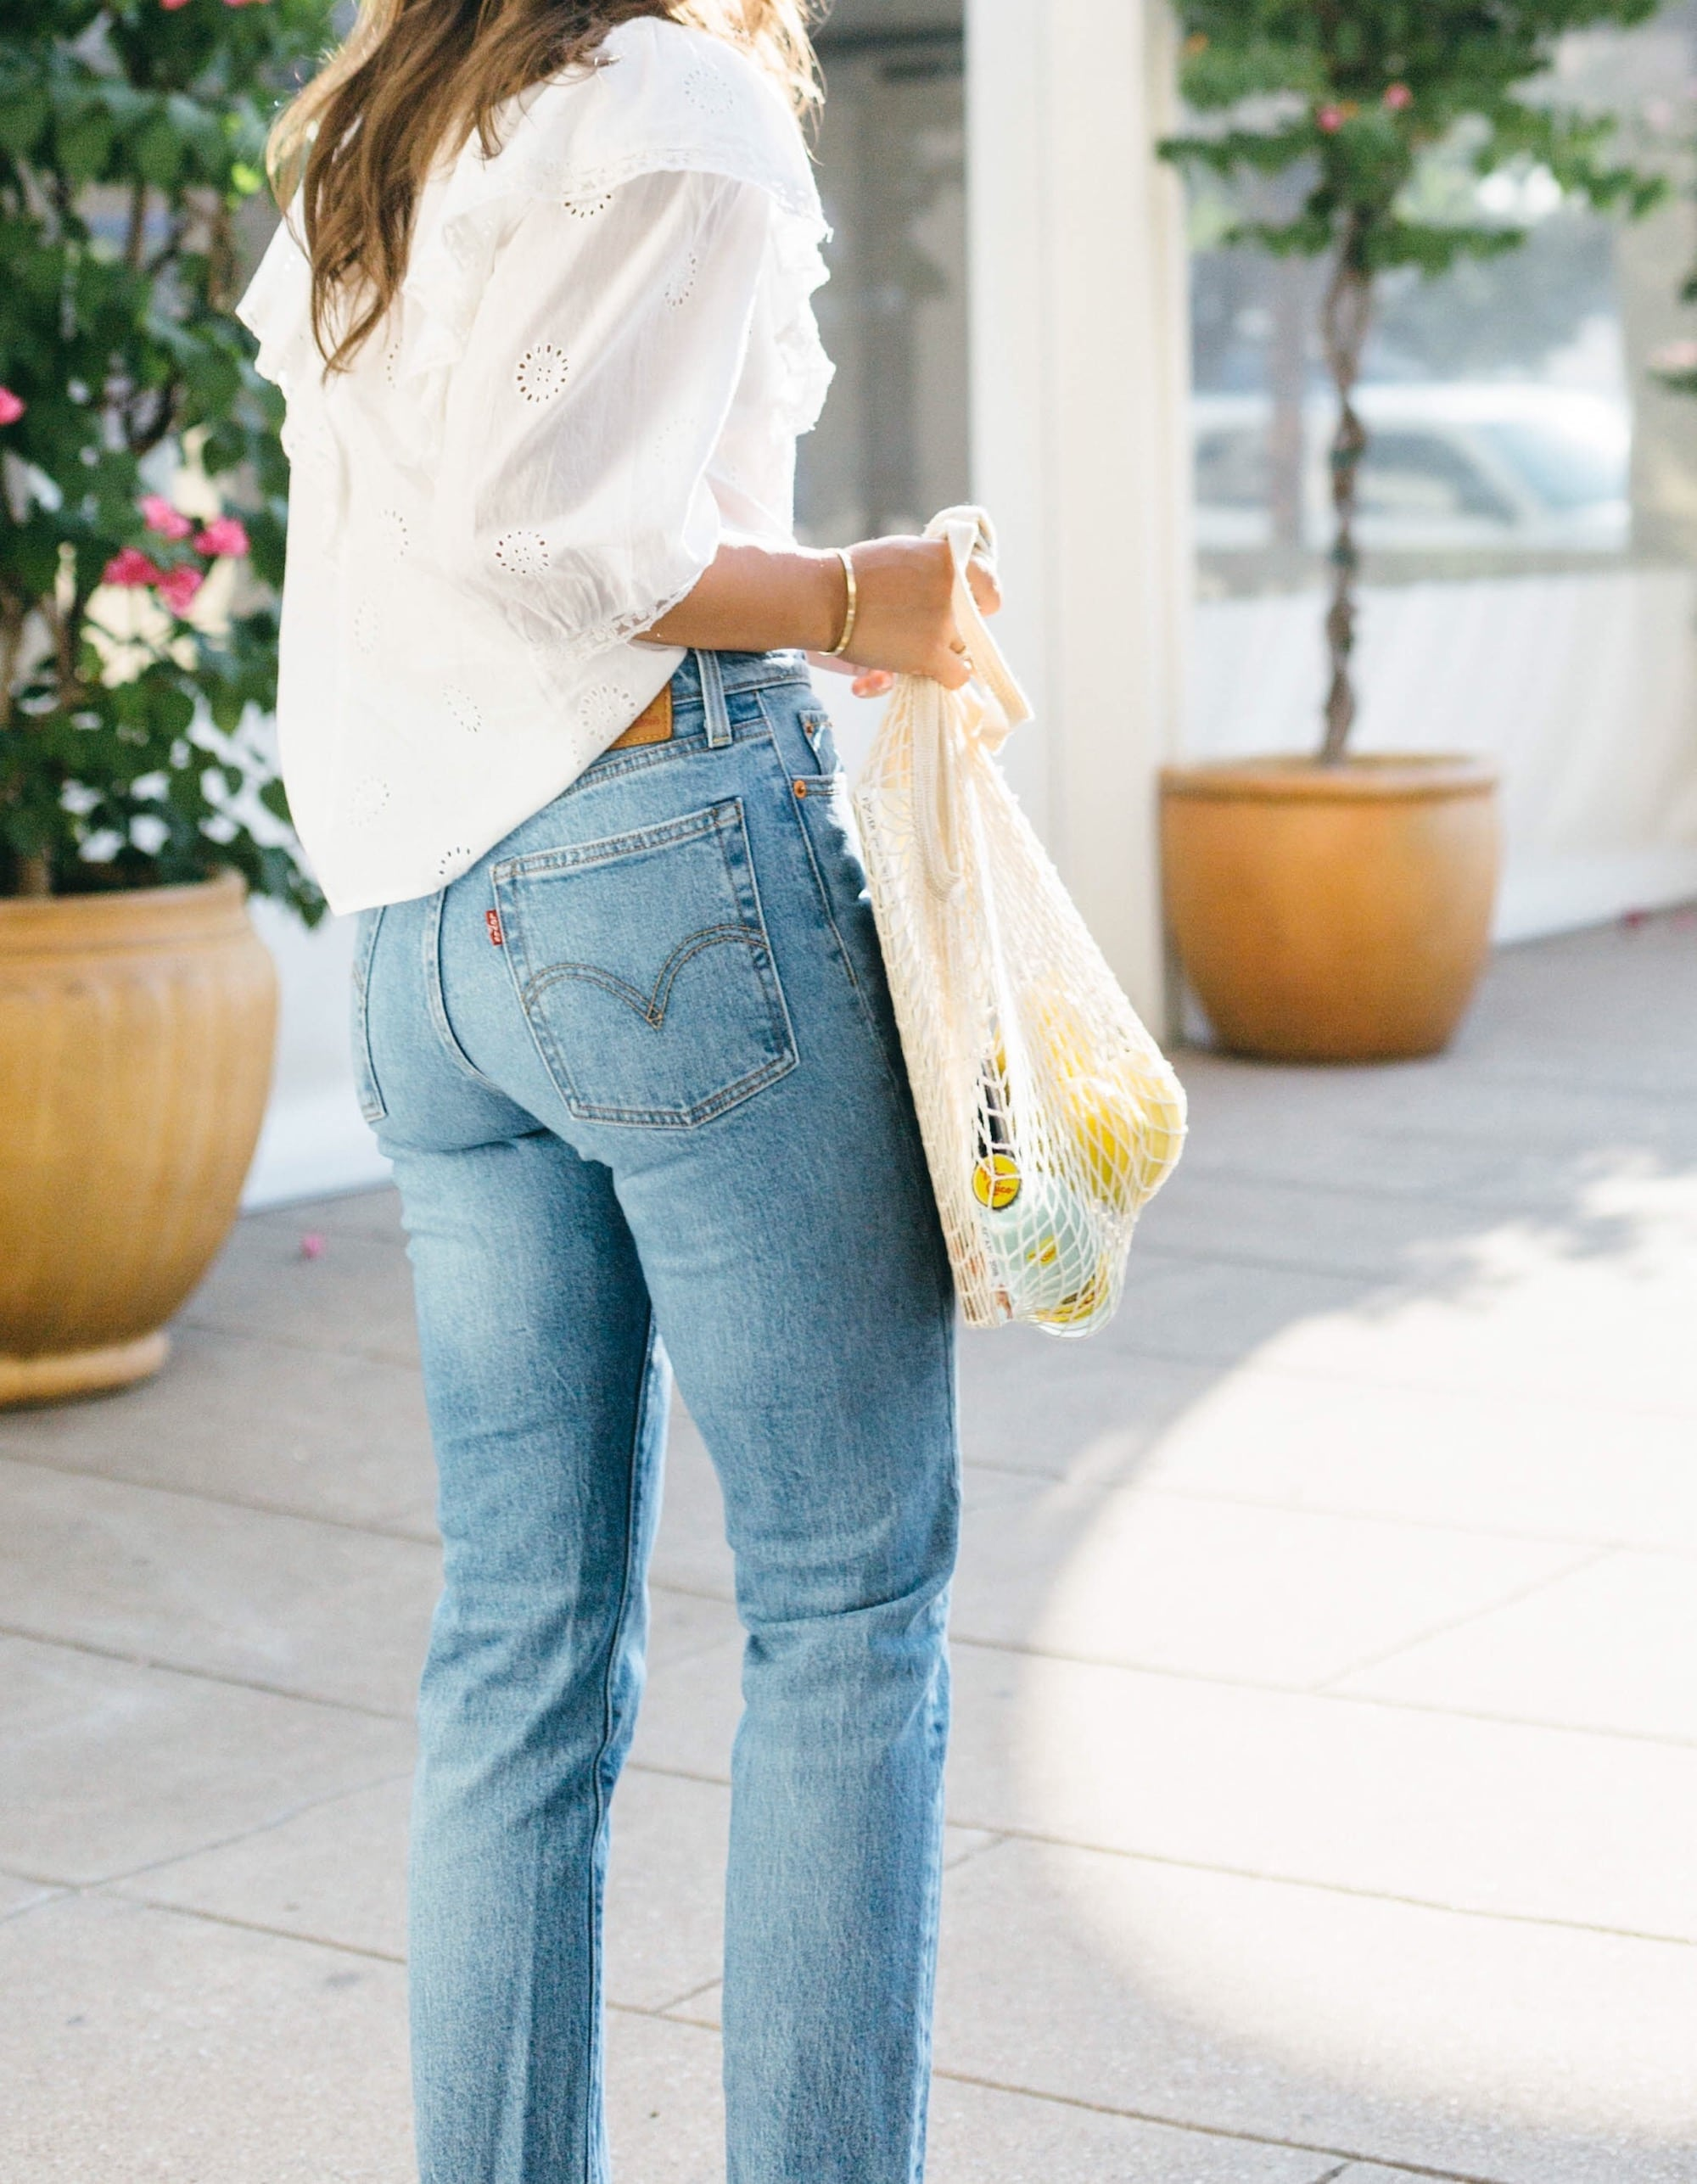 Levi Jeans and White Zara Top